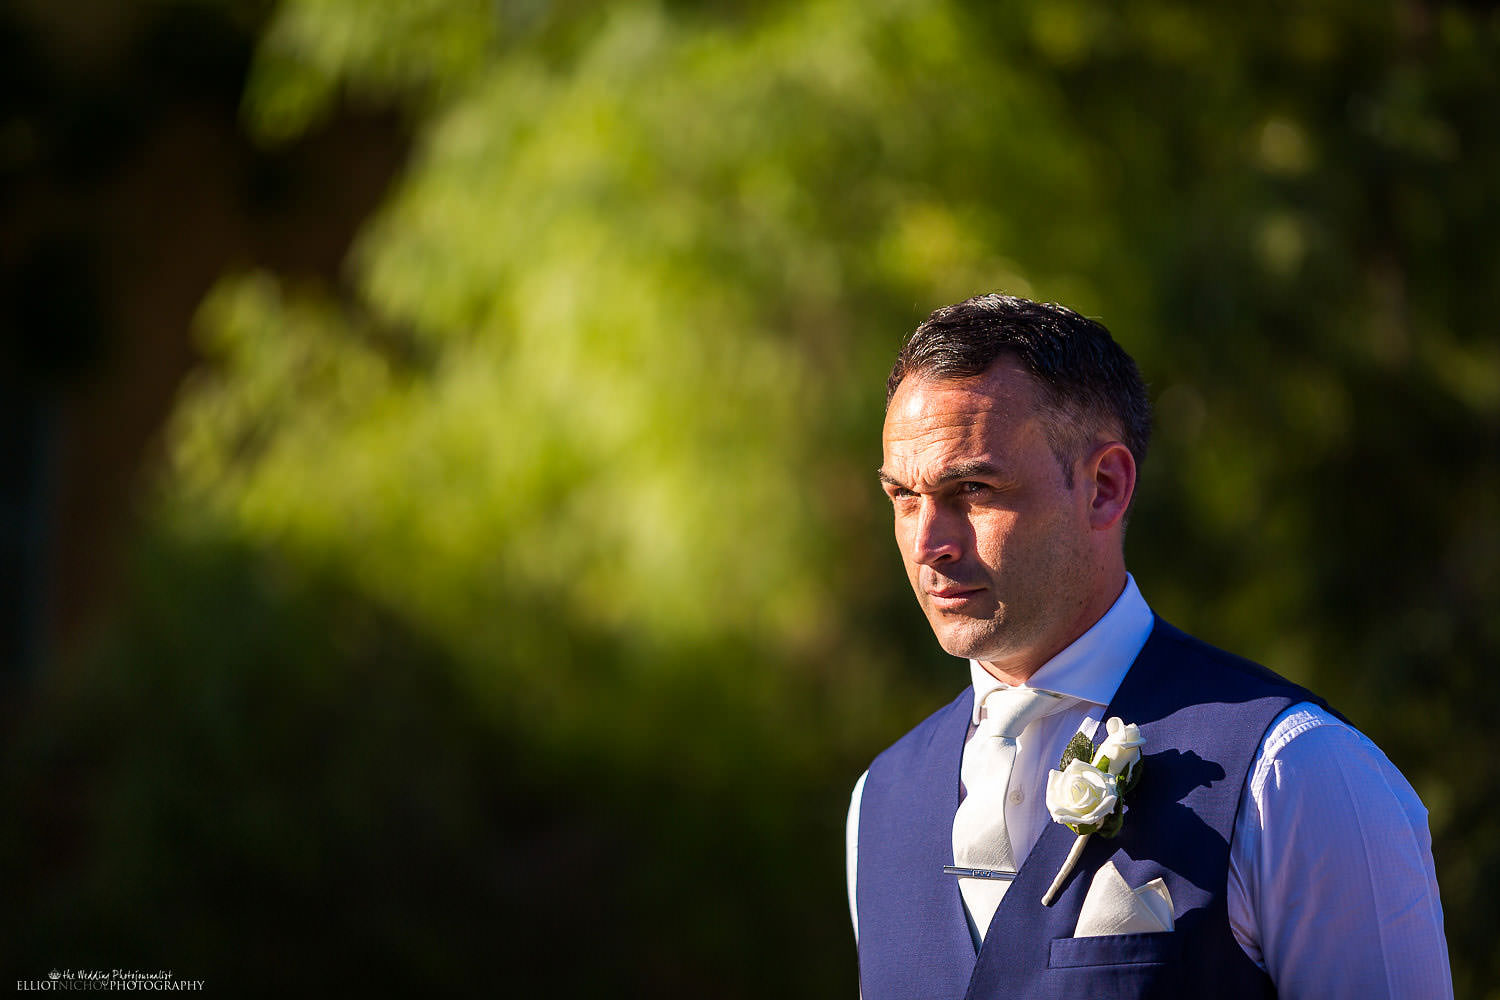 Groom waits for his bride to arrive in the Baroque Gardens at Villa Bologna, Malta.